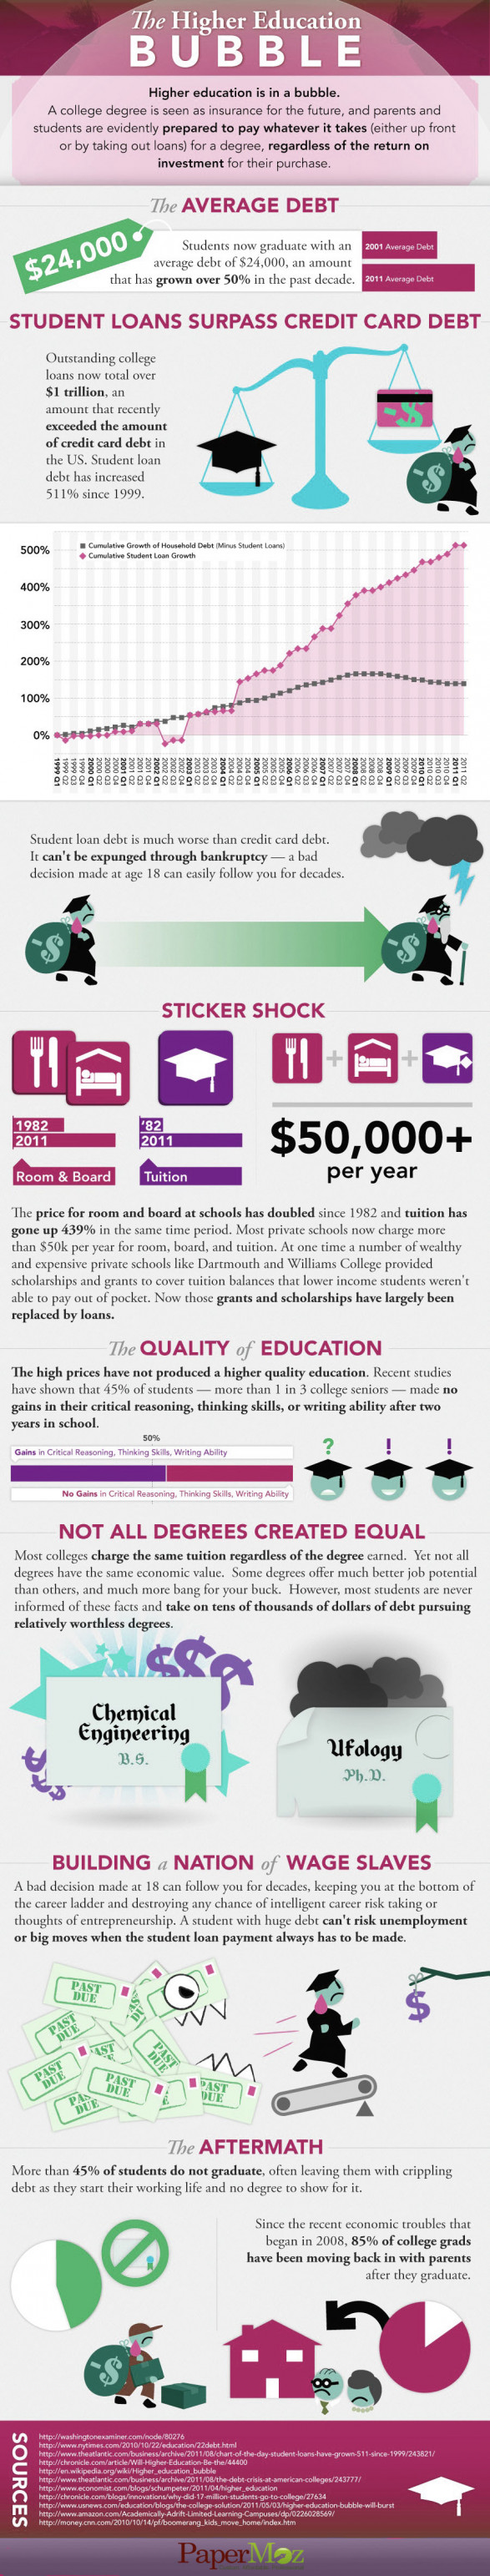 Quote: High education bubble